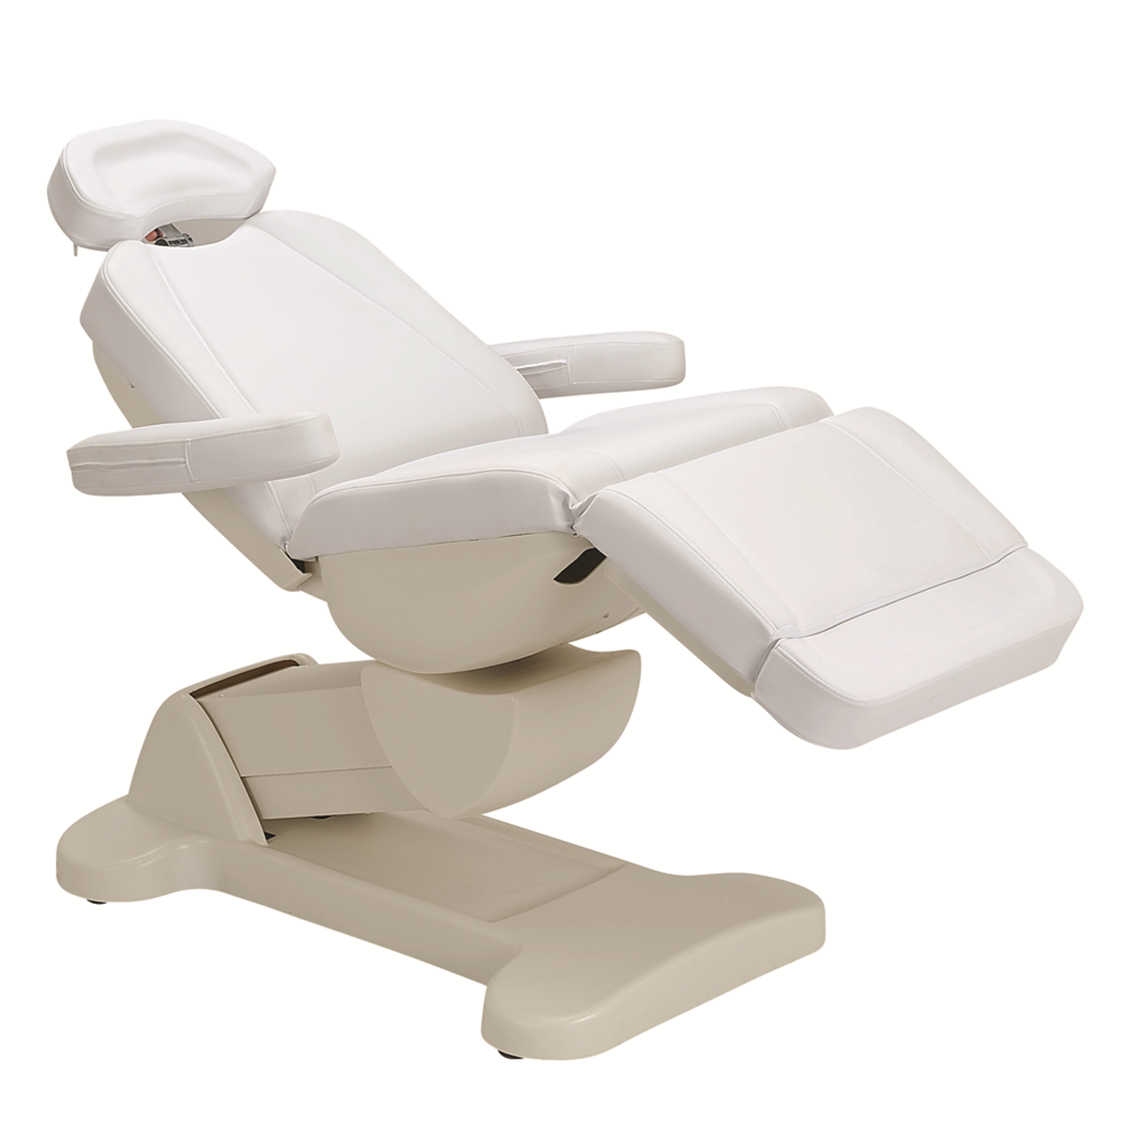 Monarch Spa Treatment Table - Garfield Commercial Enterprises Salon Equipment Spa Furniture Barber Chair Luxury